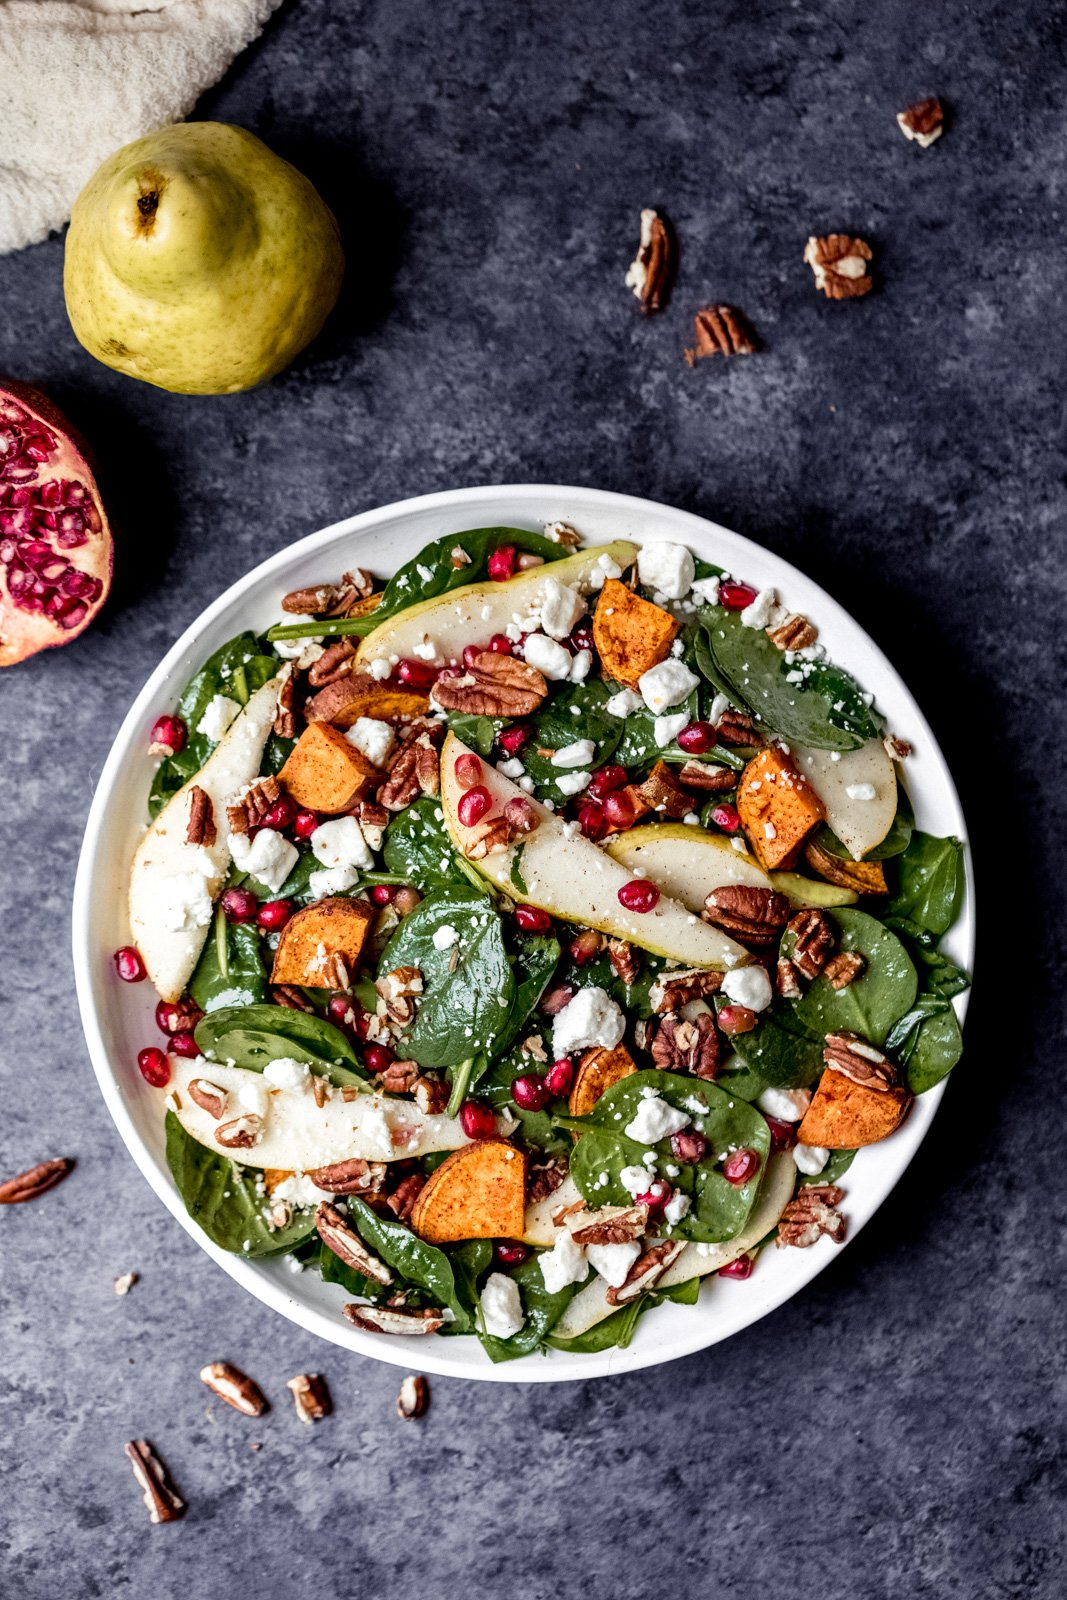 pomegranate spinach salad with pears and sweet potato in a bowl next to a pear and half of a pomegranate